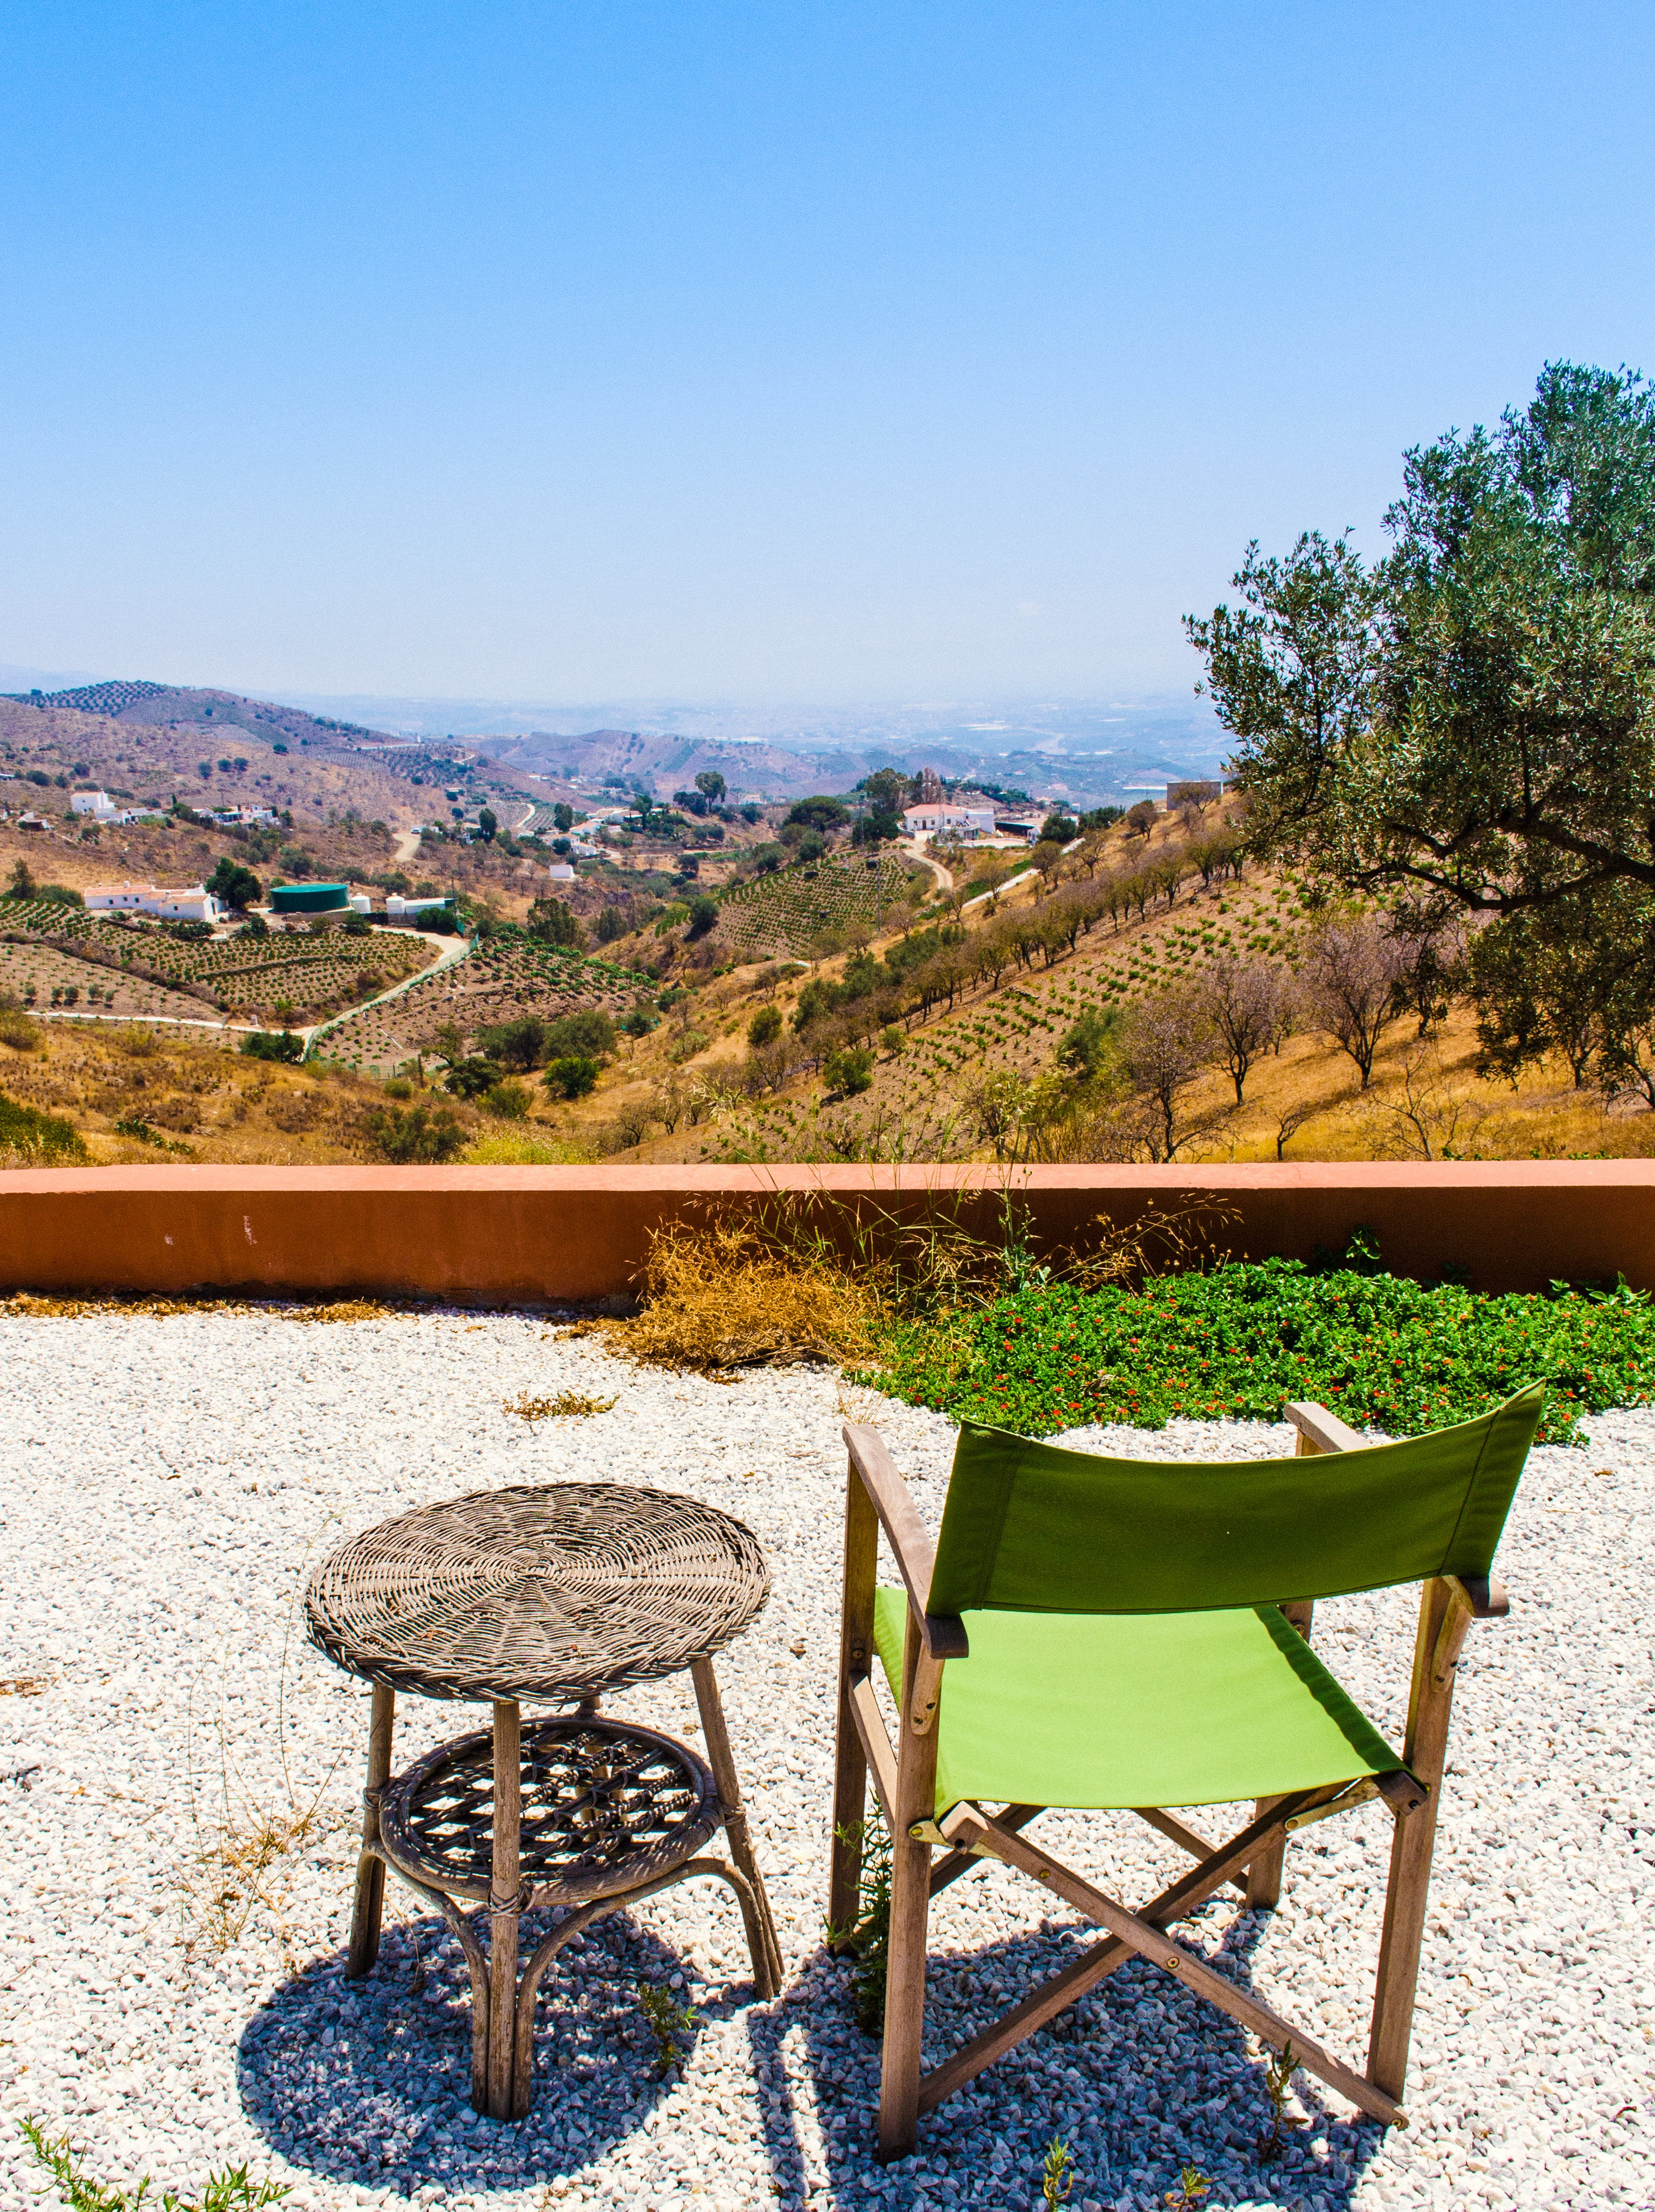 Photo of Green and Brown Folding Chair Near Wicker Table